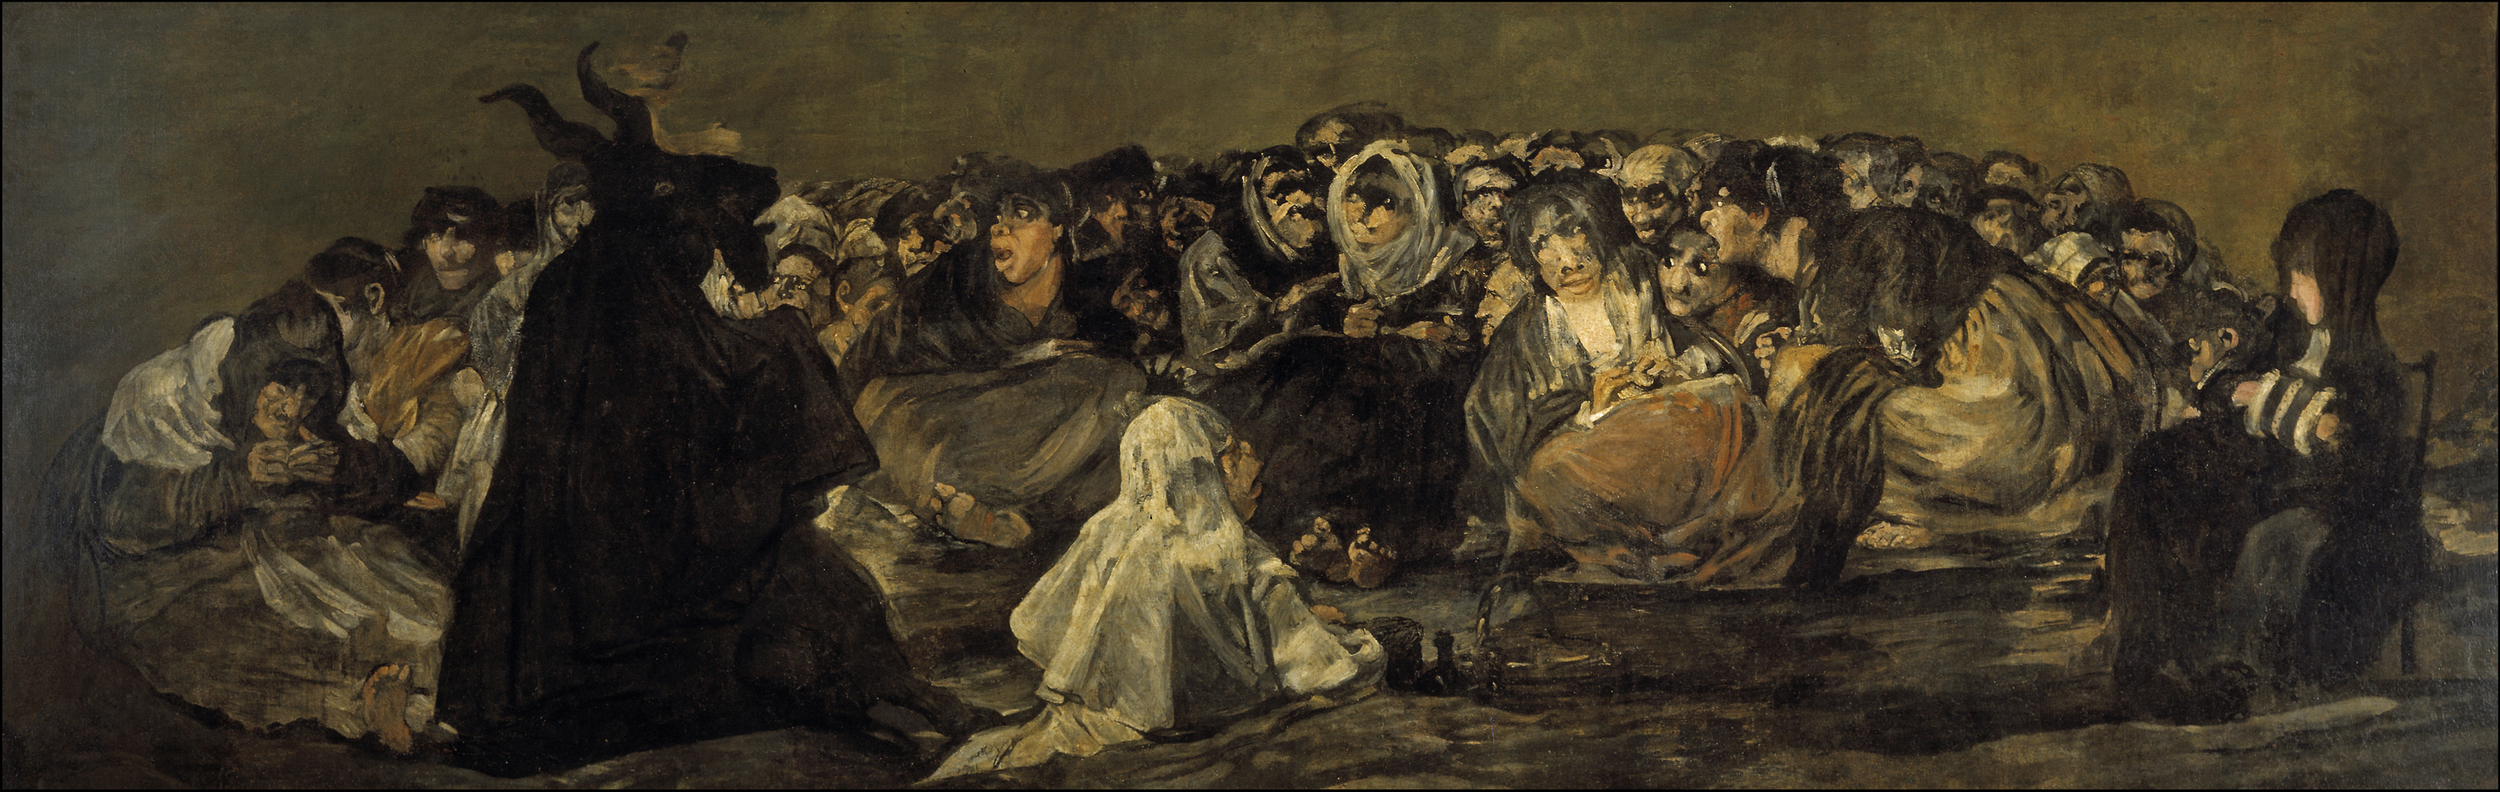 Francisco Goya,  Witches' Sabbath (The Great He-Goat) , 1821–23, Museo del Prado, Madrid.